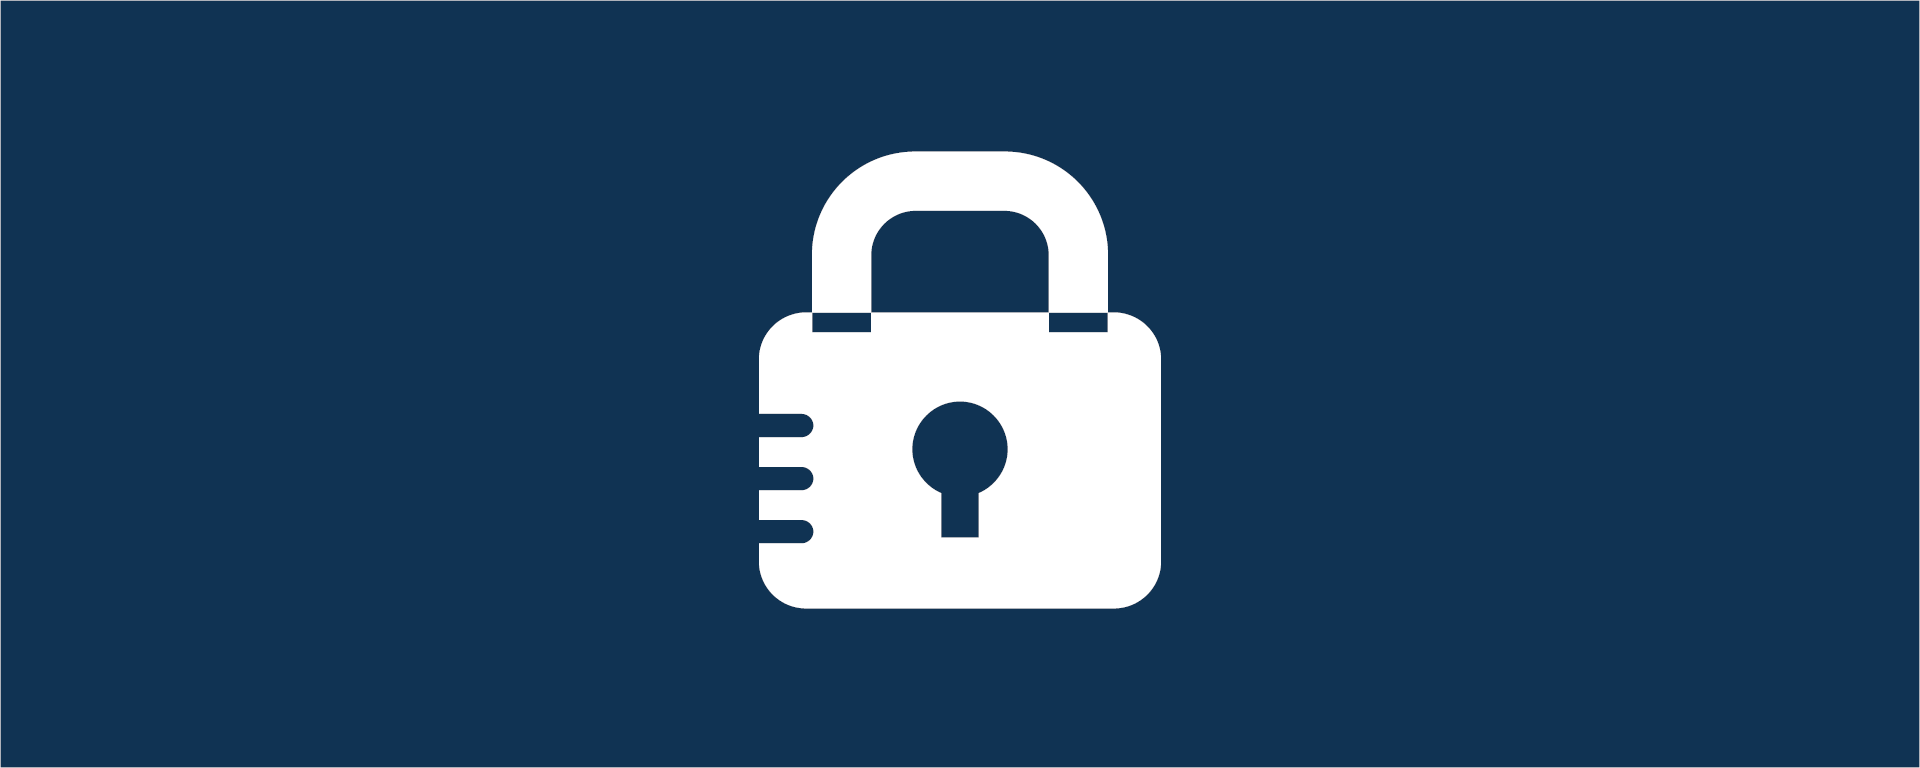 Banner of a white lock icon on a navy blue background.